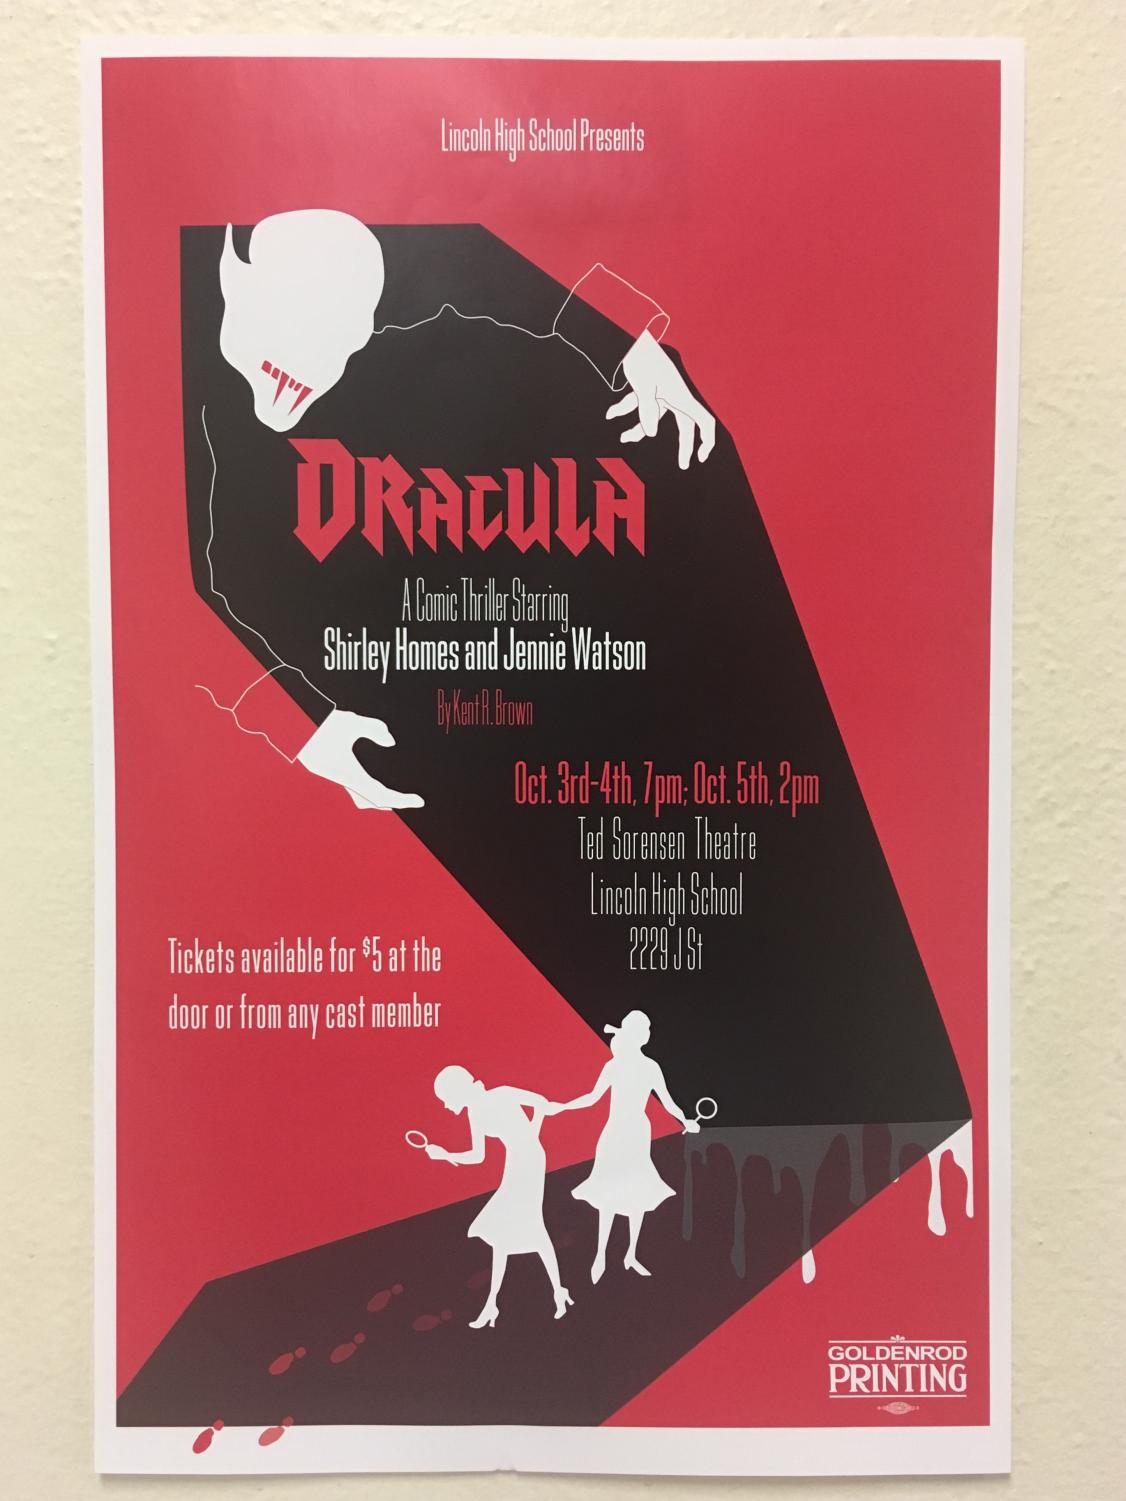 Dracula performances will run from October 3 until October 5, 2019. Photo courtesy of The Advocate.